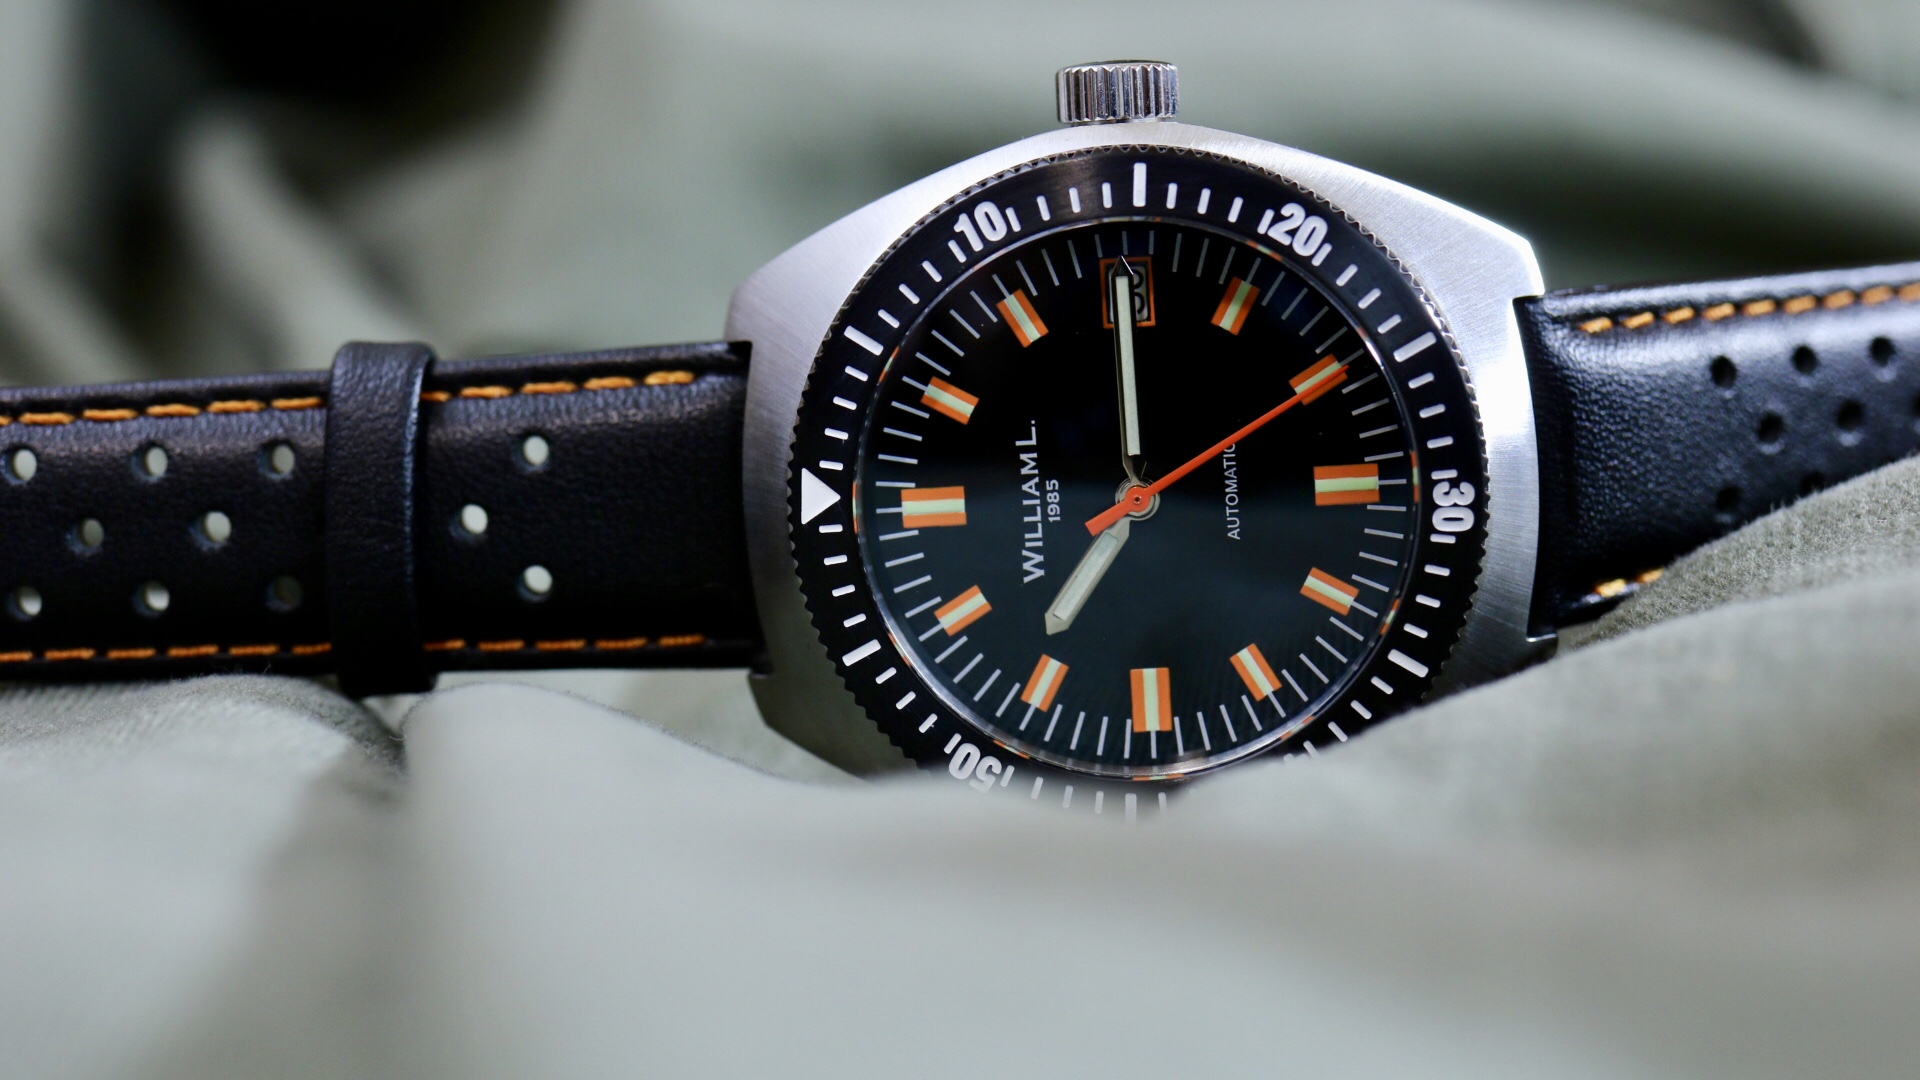 William L. 1985 Vintage Diver